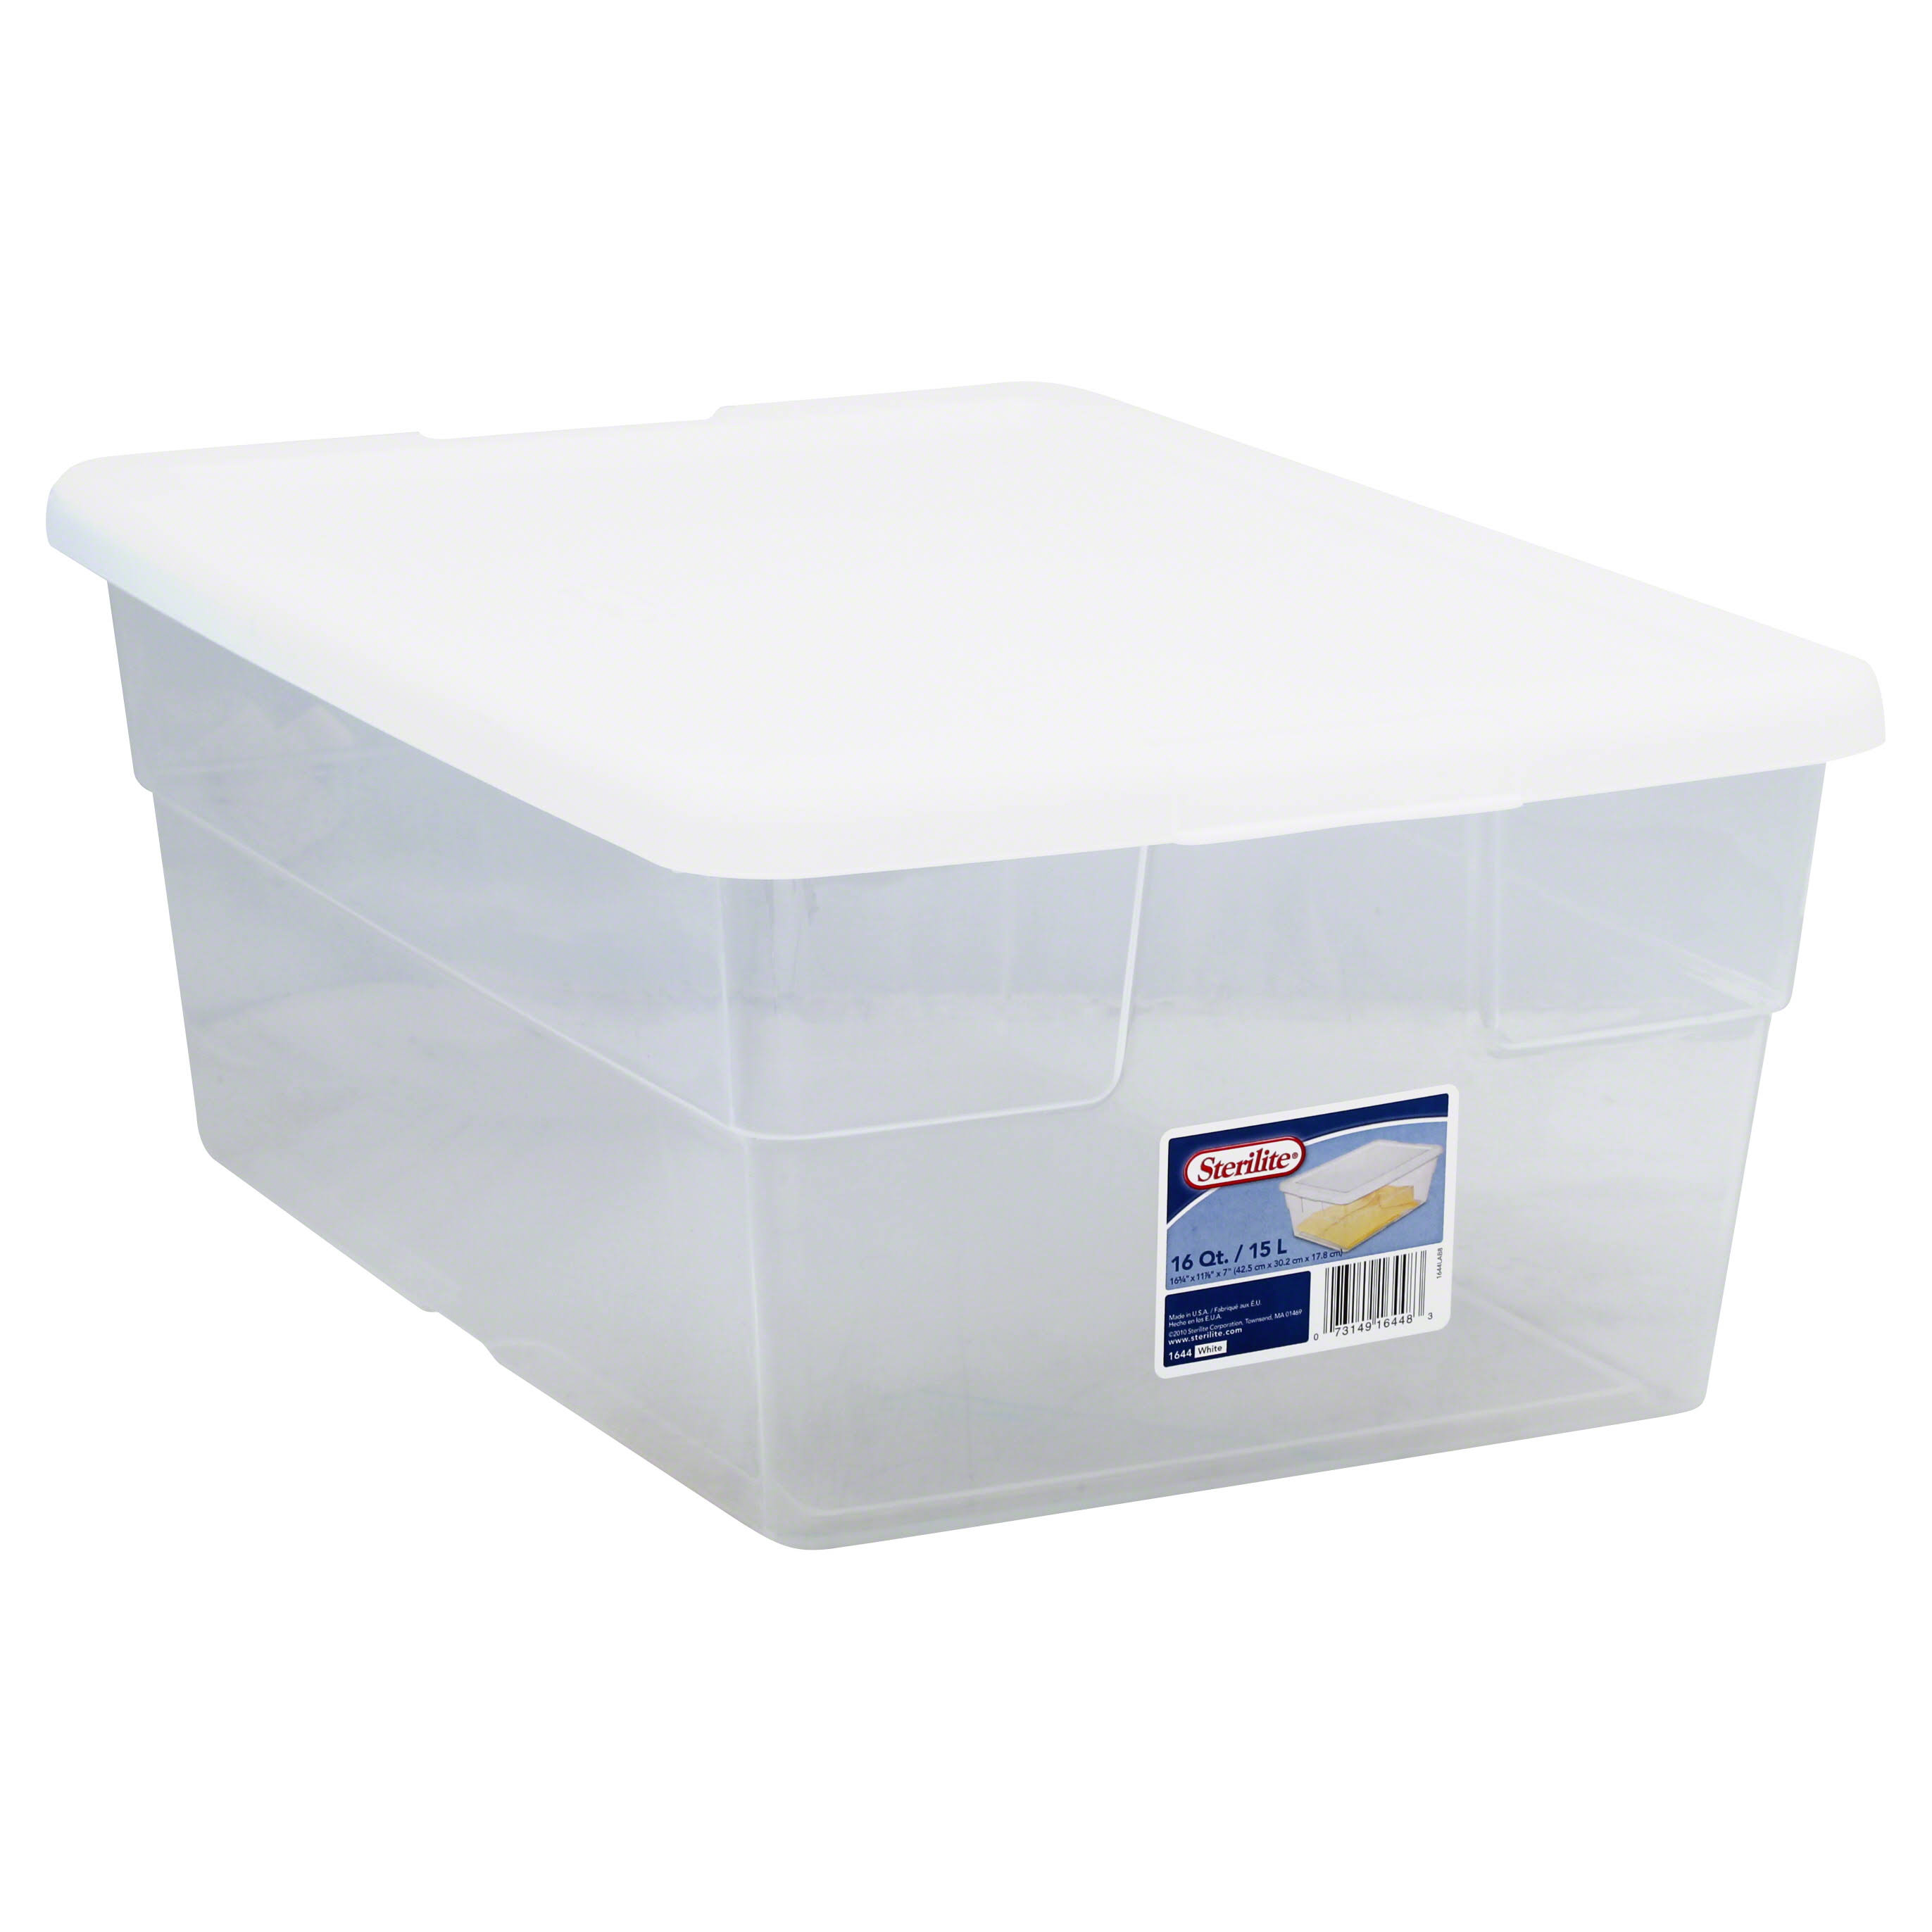 Sterilite Basic Clear Storage Box - with White Lid, 16 Quart